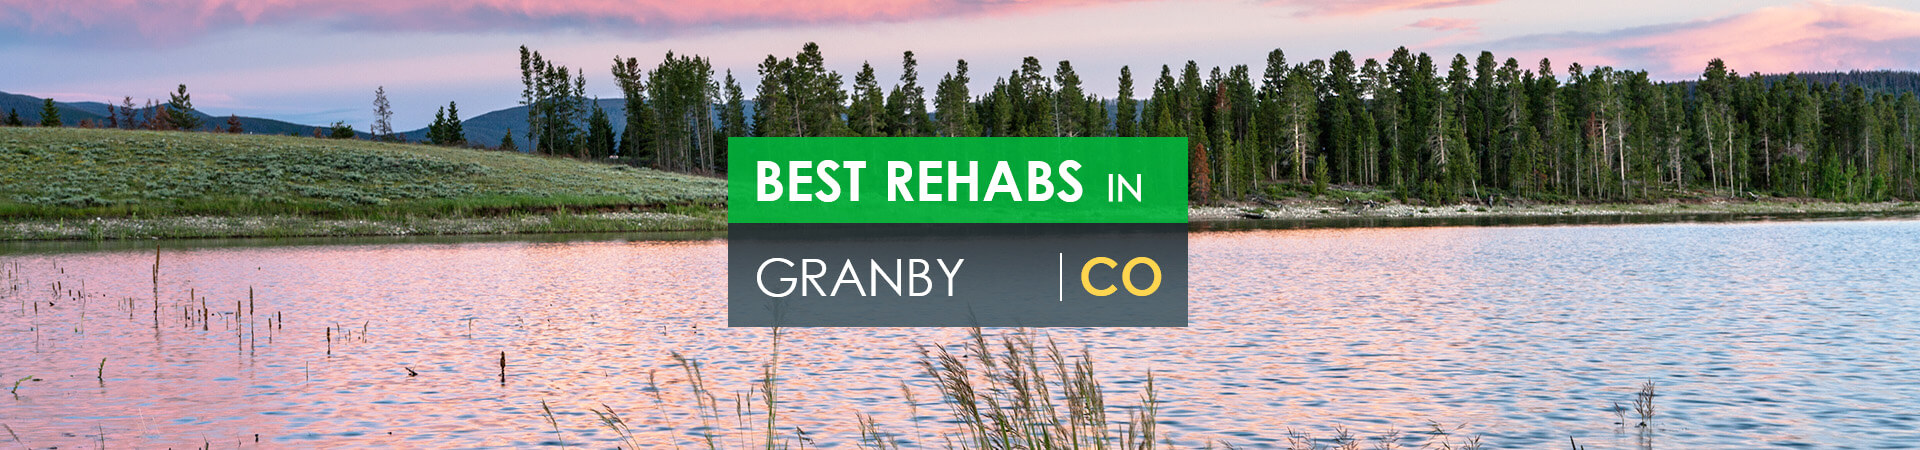 Best rehabs in Granby, CO